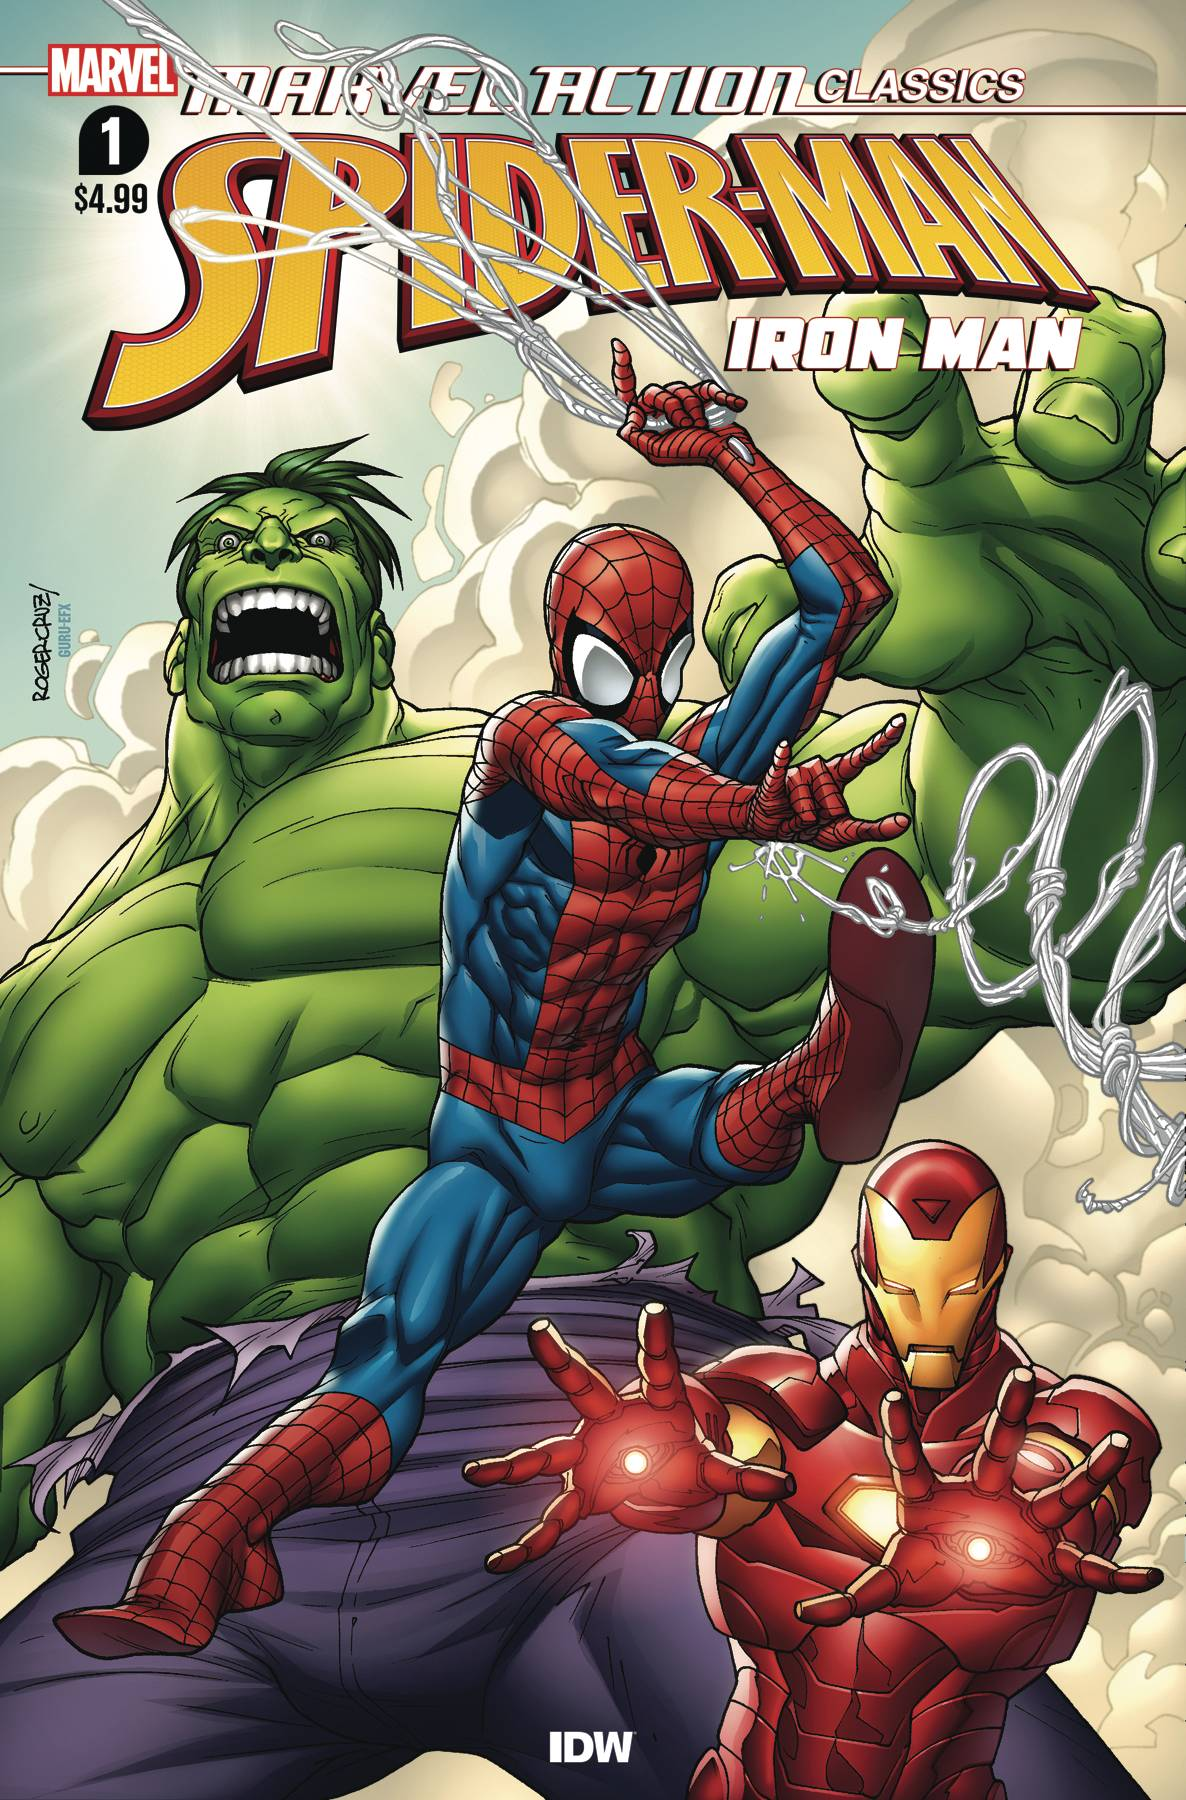 Marvel Action Classics: Avengers Starring Iron Man #1